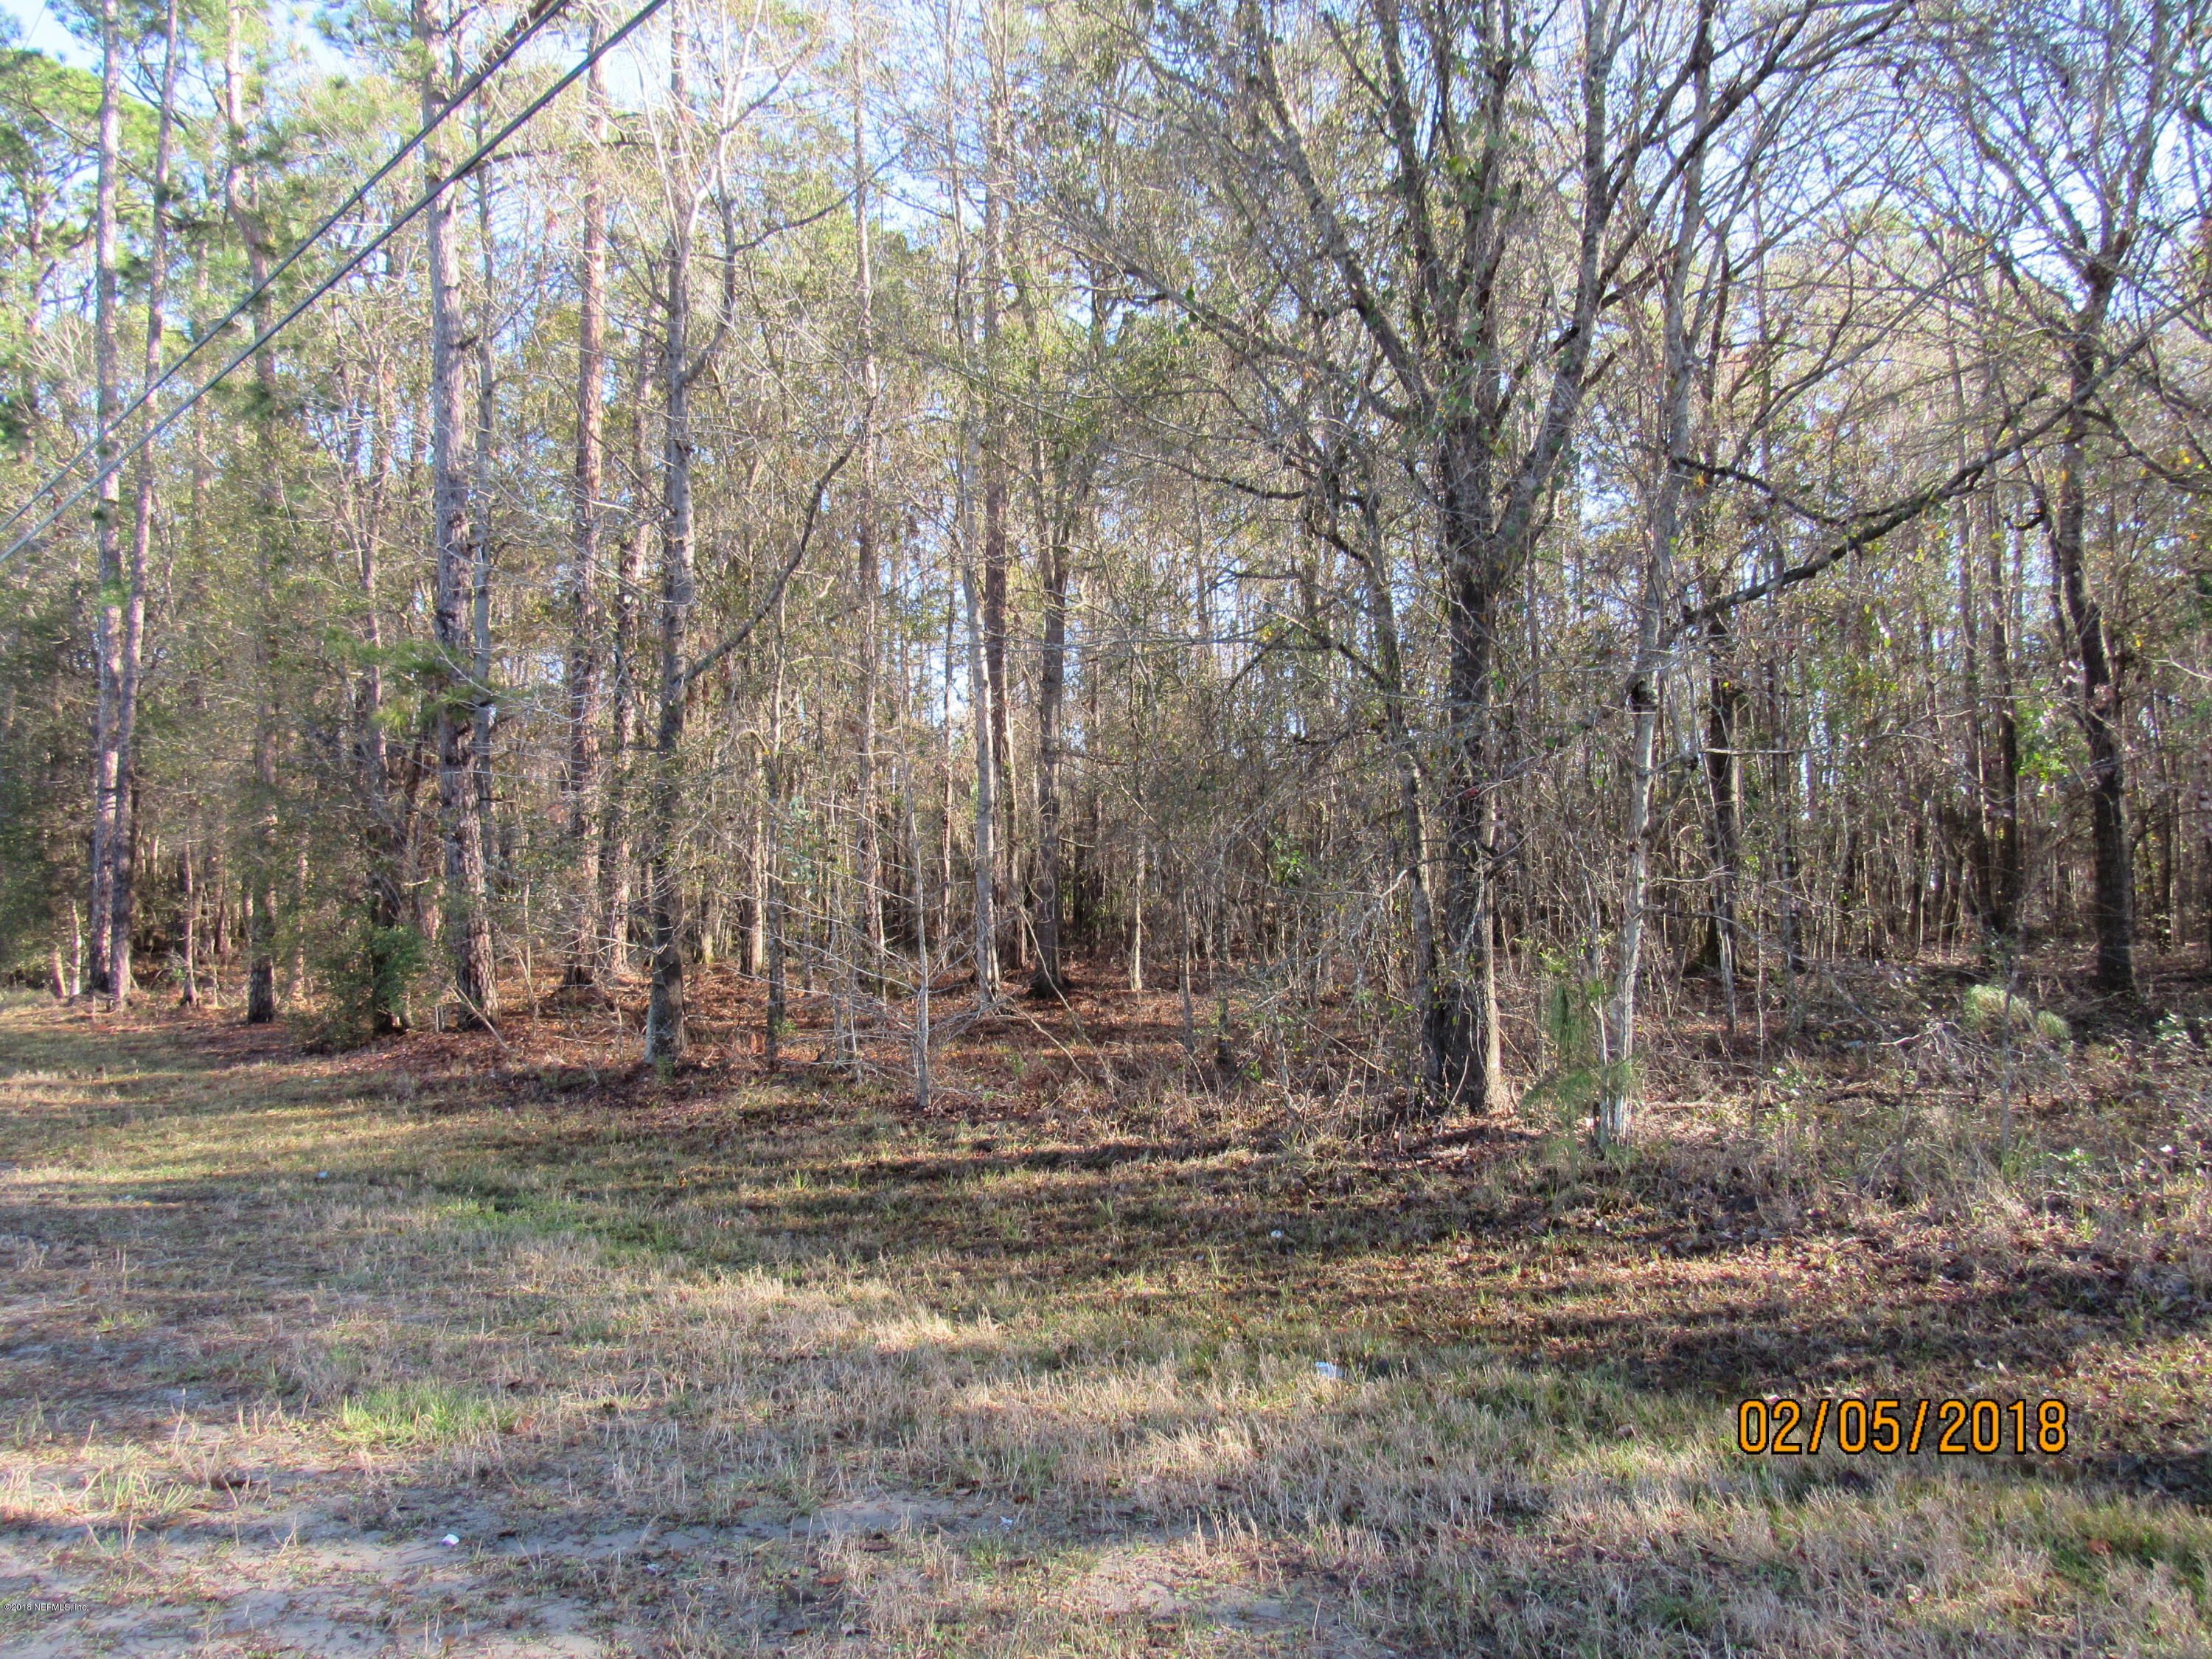 0 COUNTY RD 220, MIDDLEBURG, FLORIDA 32068, ,Vacant land,For sale,COUNTY RD 220,919968